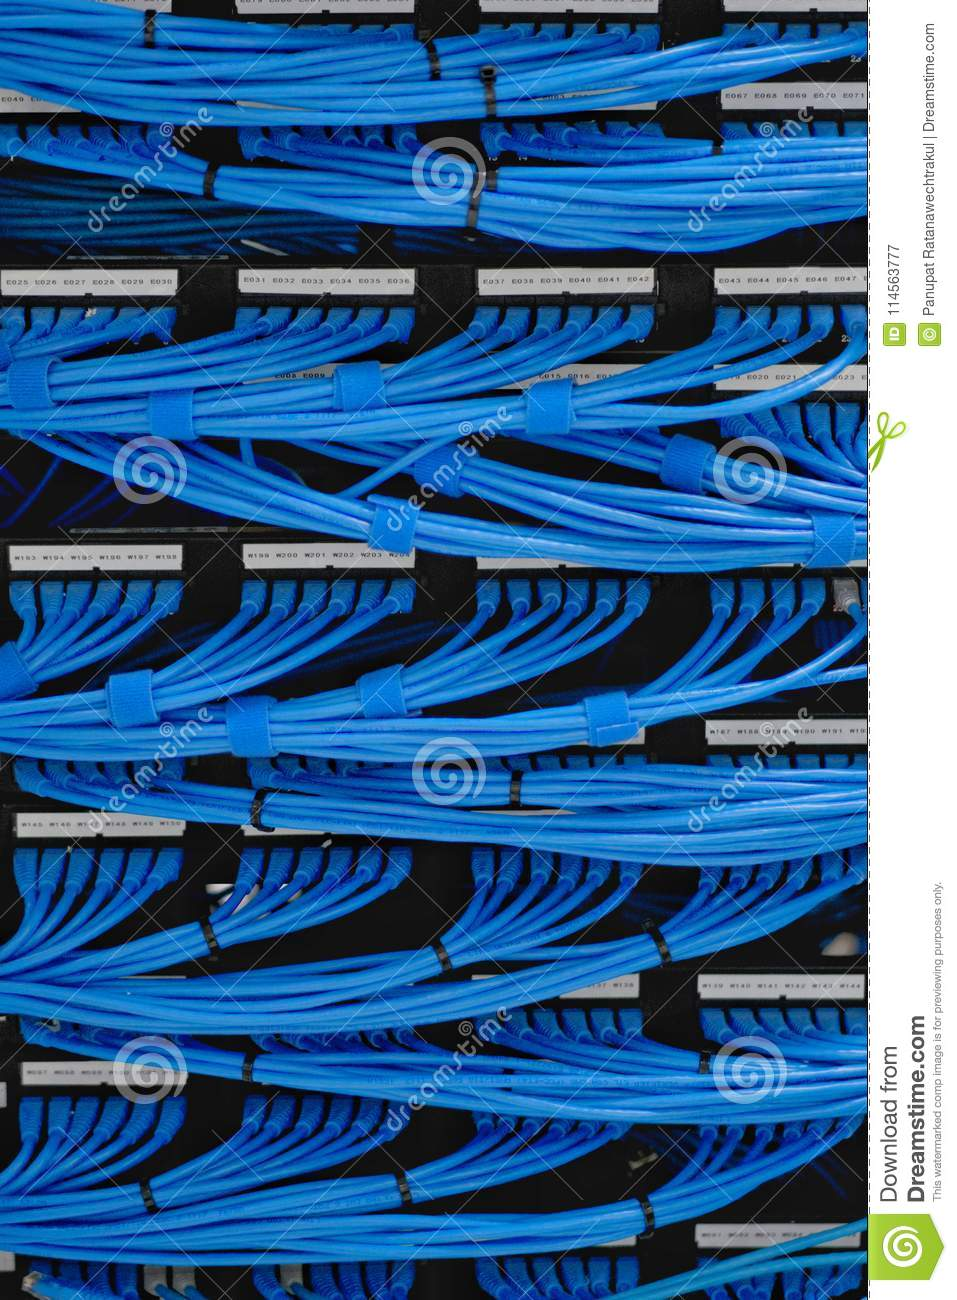 Awesome Lan Cable Wiring And Networking In The Data Center Stock Image Wiring Digital Resources Remcakbiperorg